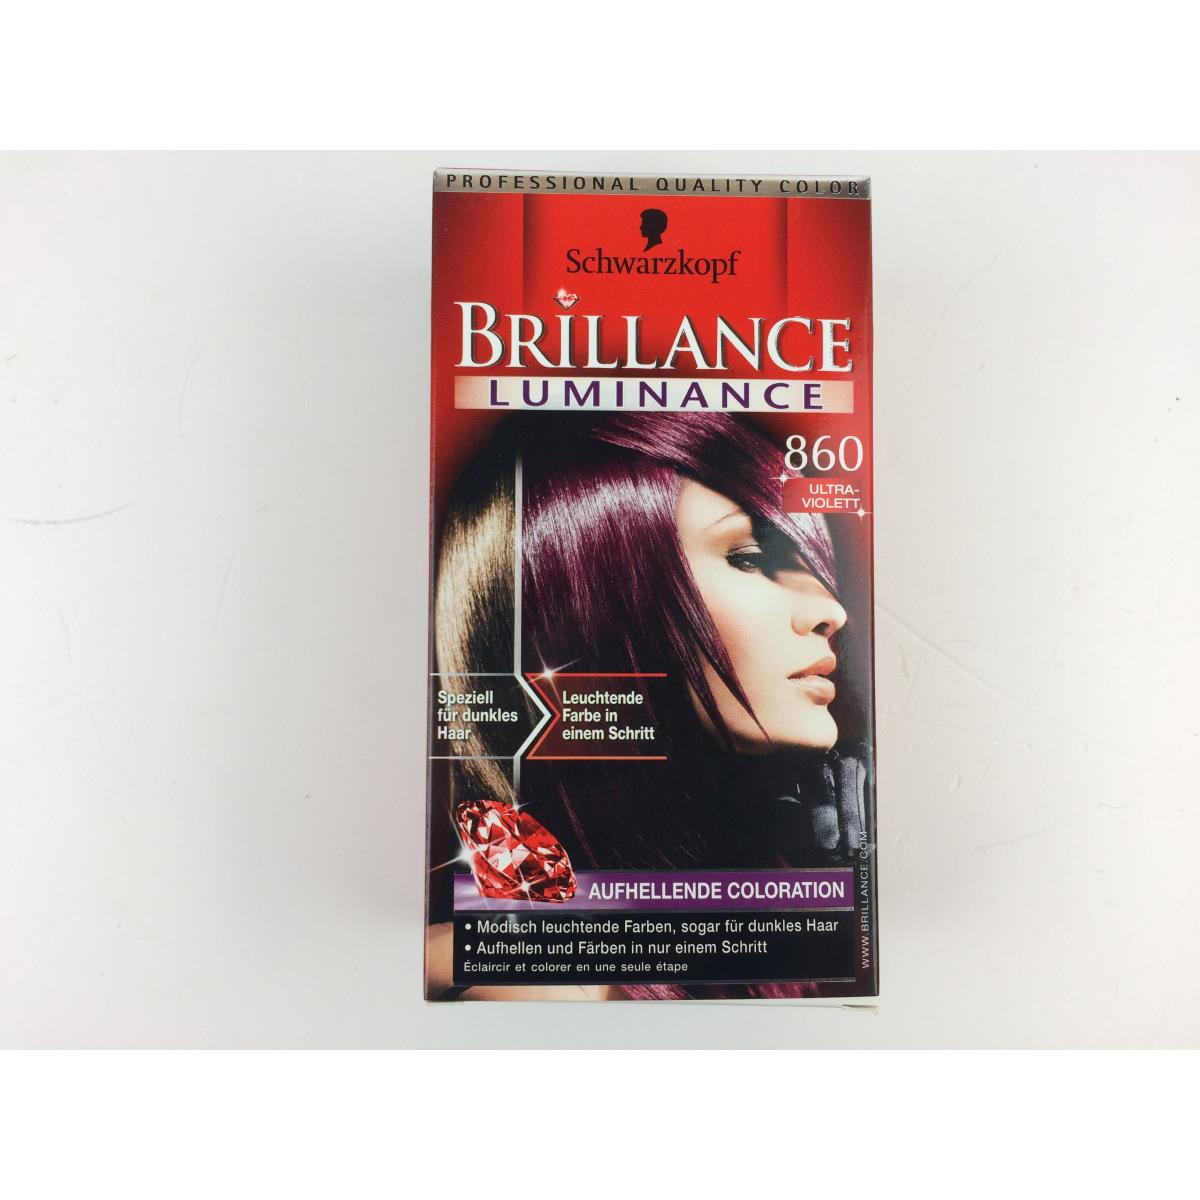 4 X Schwarzkopf Brillance Luminace 860 Ultraviolet 5748 Ml